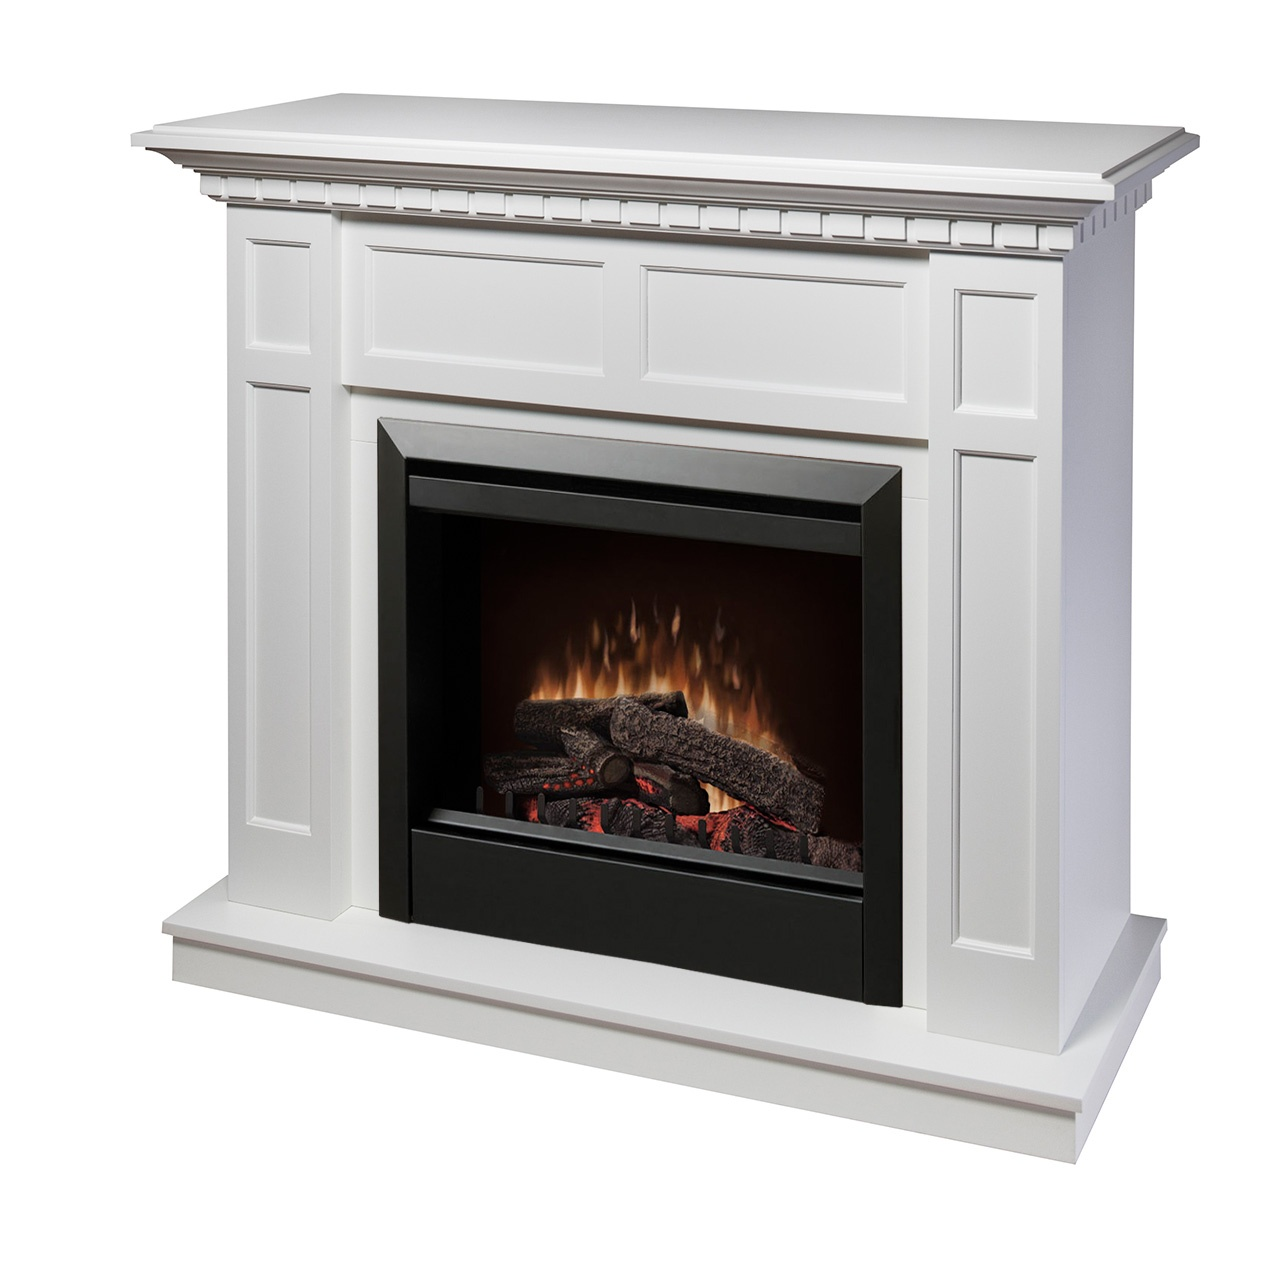 Dimplex Foyer Electrique - Dimplex Caprice Dfp4743w Electric Fireplace Wall Mantel Electric [mjhdah]https://www.dimplex.com/cms/products/gallery/2806/RBF36_Angle_r2L_1280.jpg